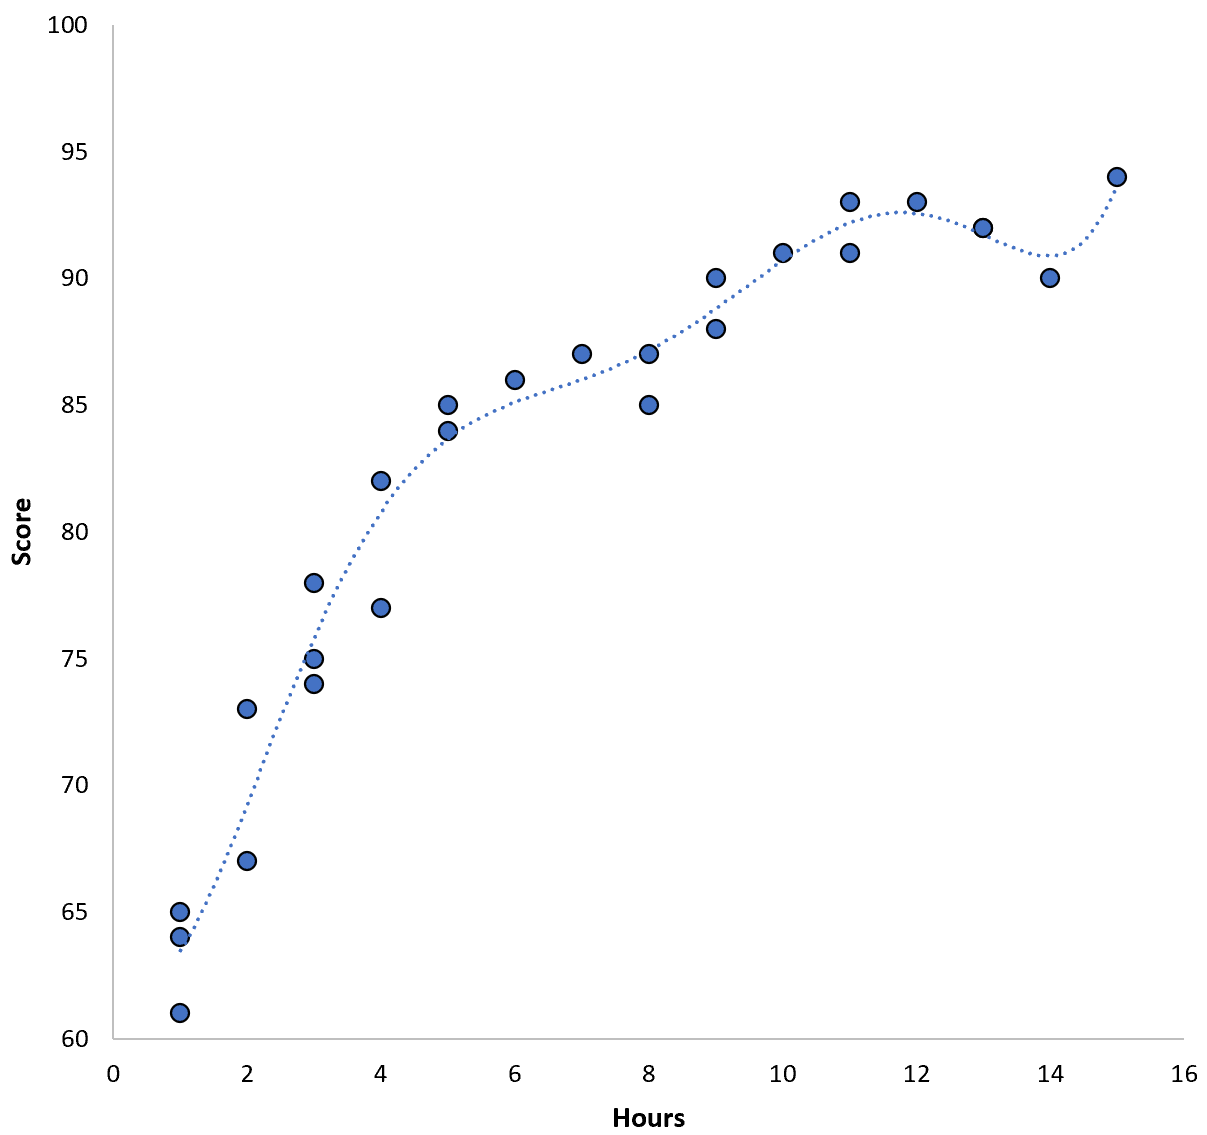 Overfitting a model